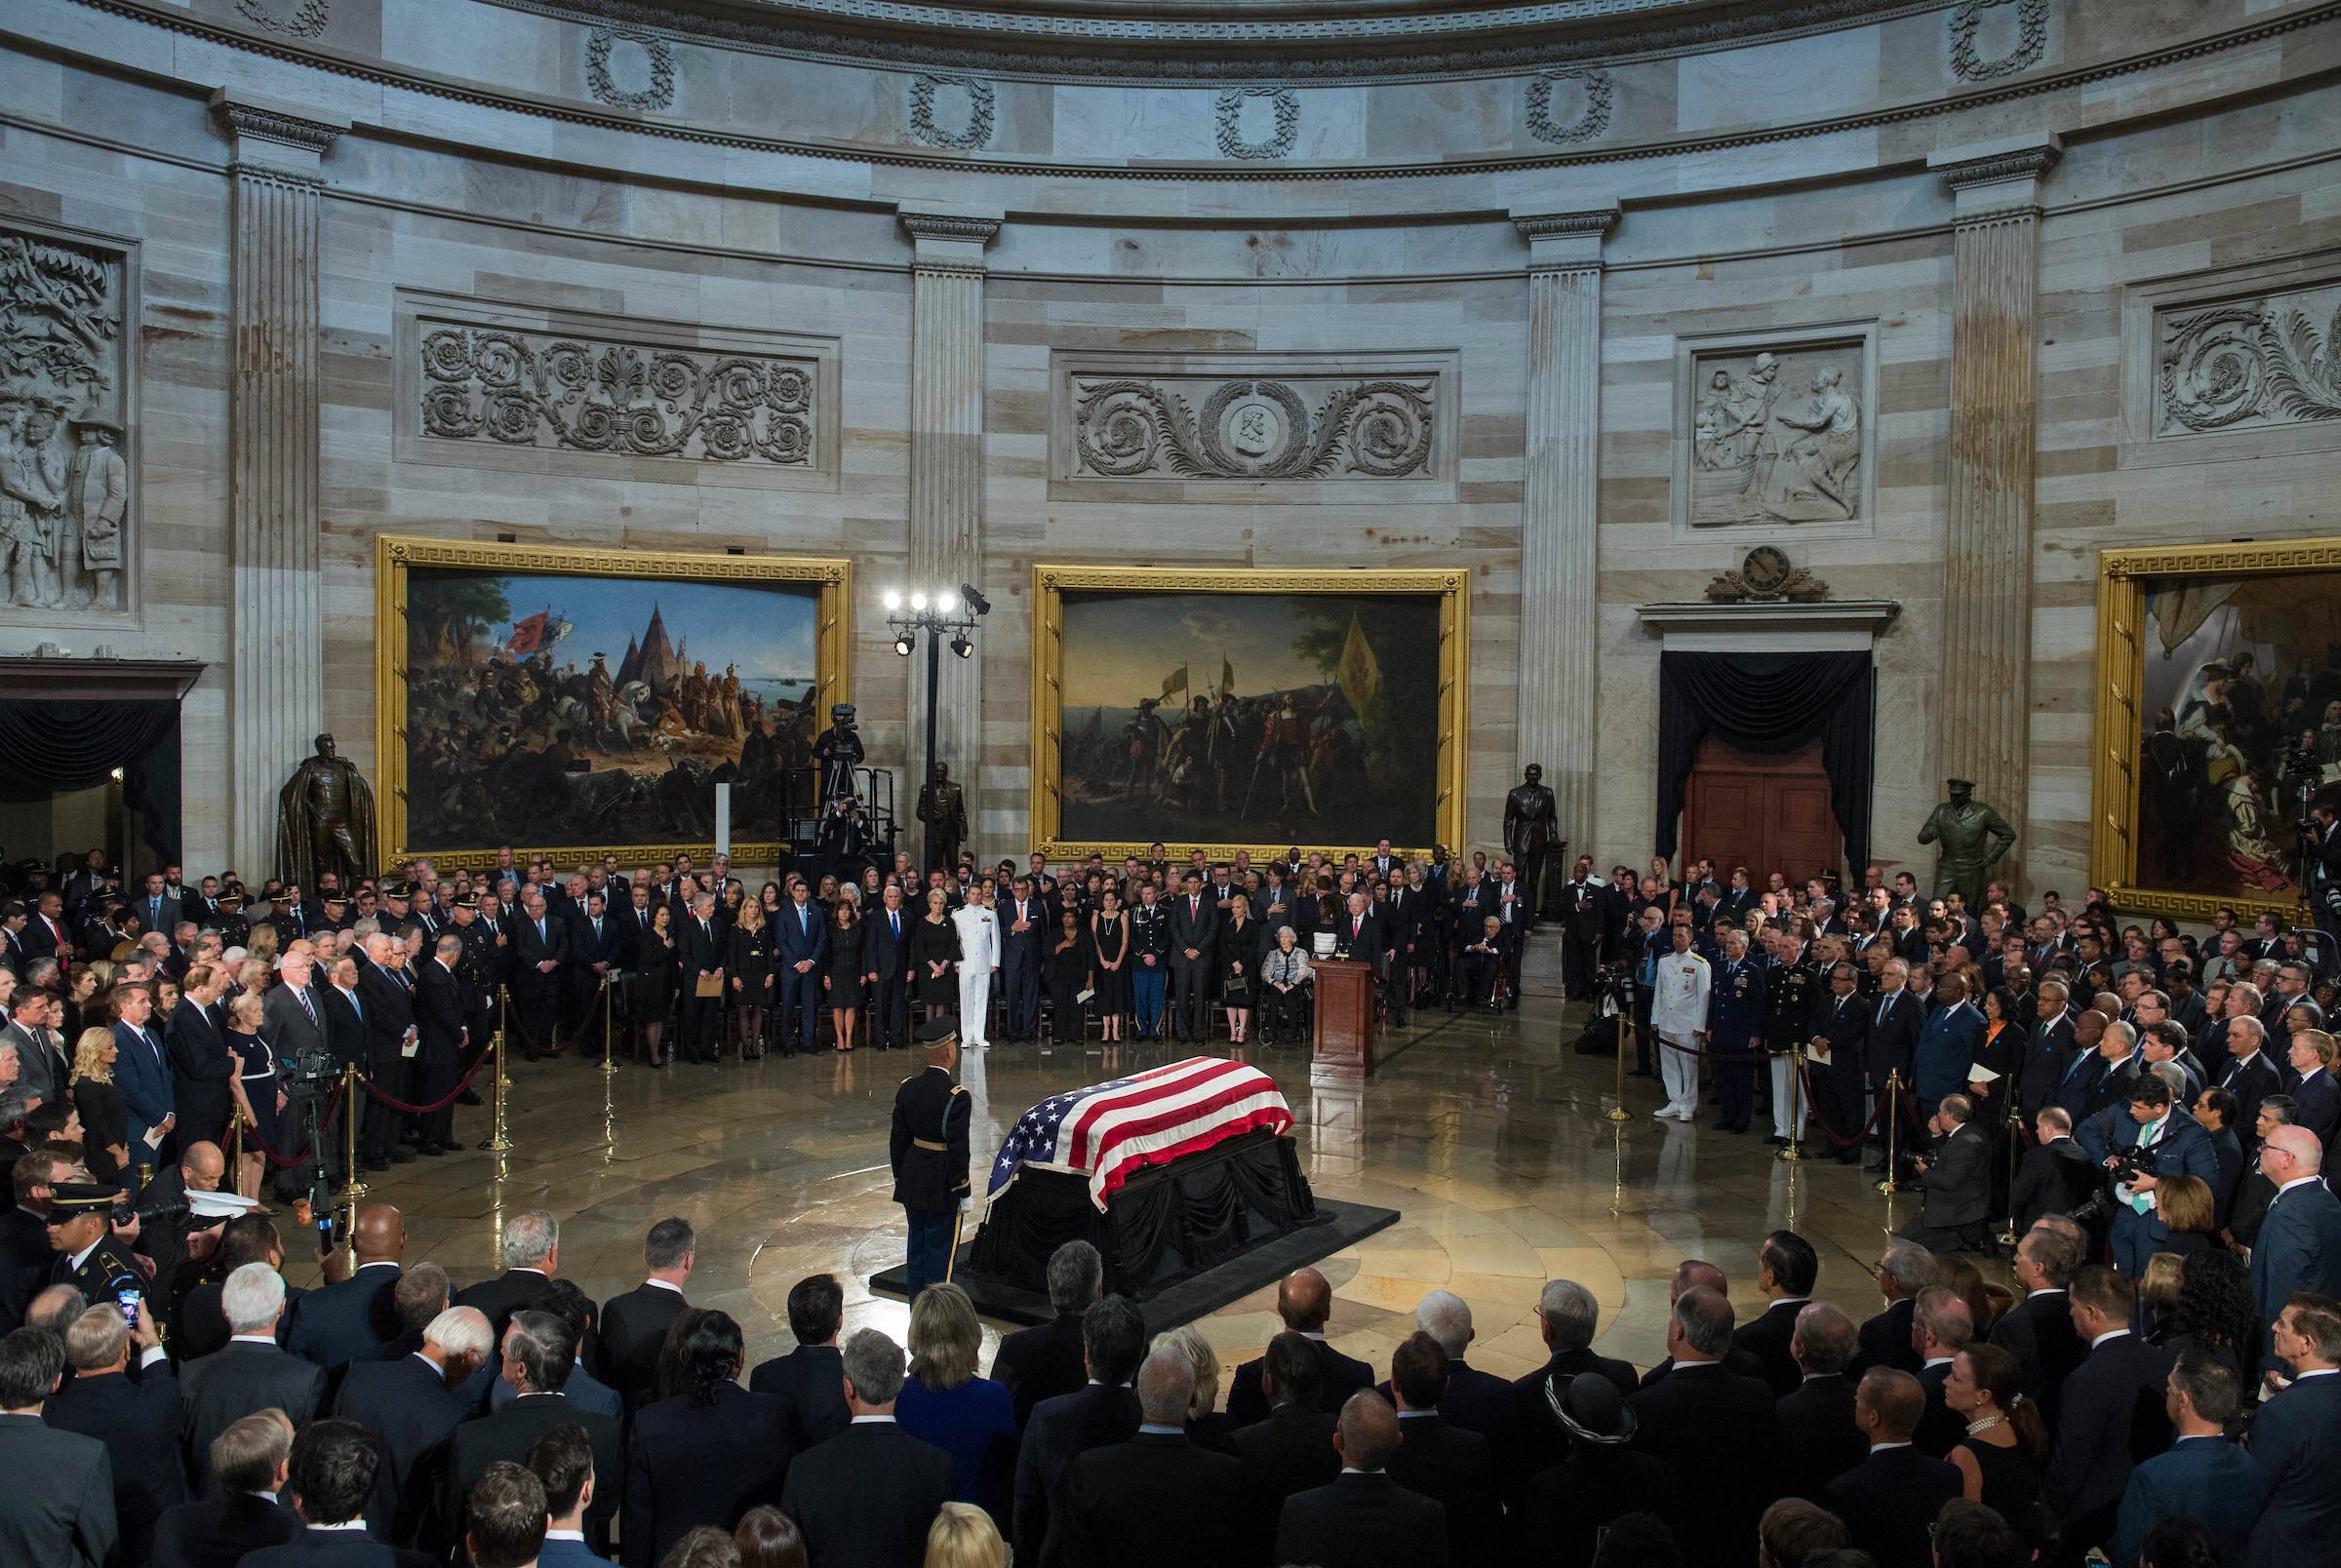 The casket containing the late Sen. John McCain, R-Ariz., lies in state in the Capitol rotunda on August 31, 2018. (Photo By Tom Williams/CQ Roll Call)